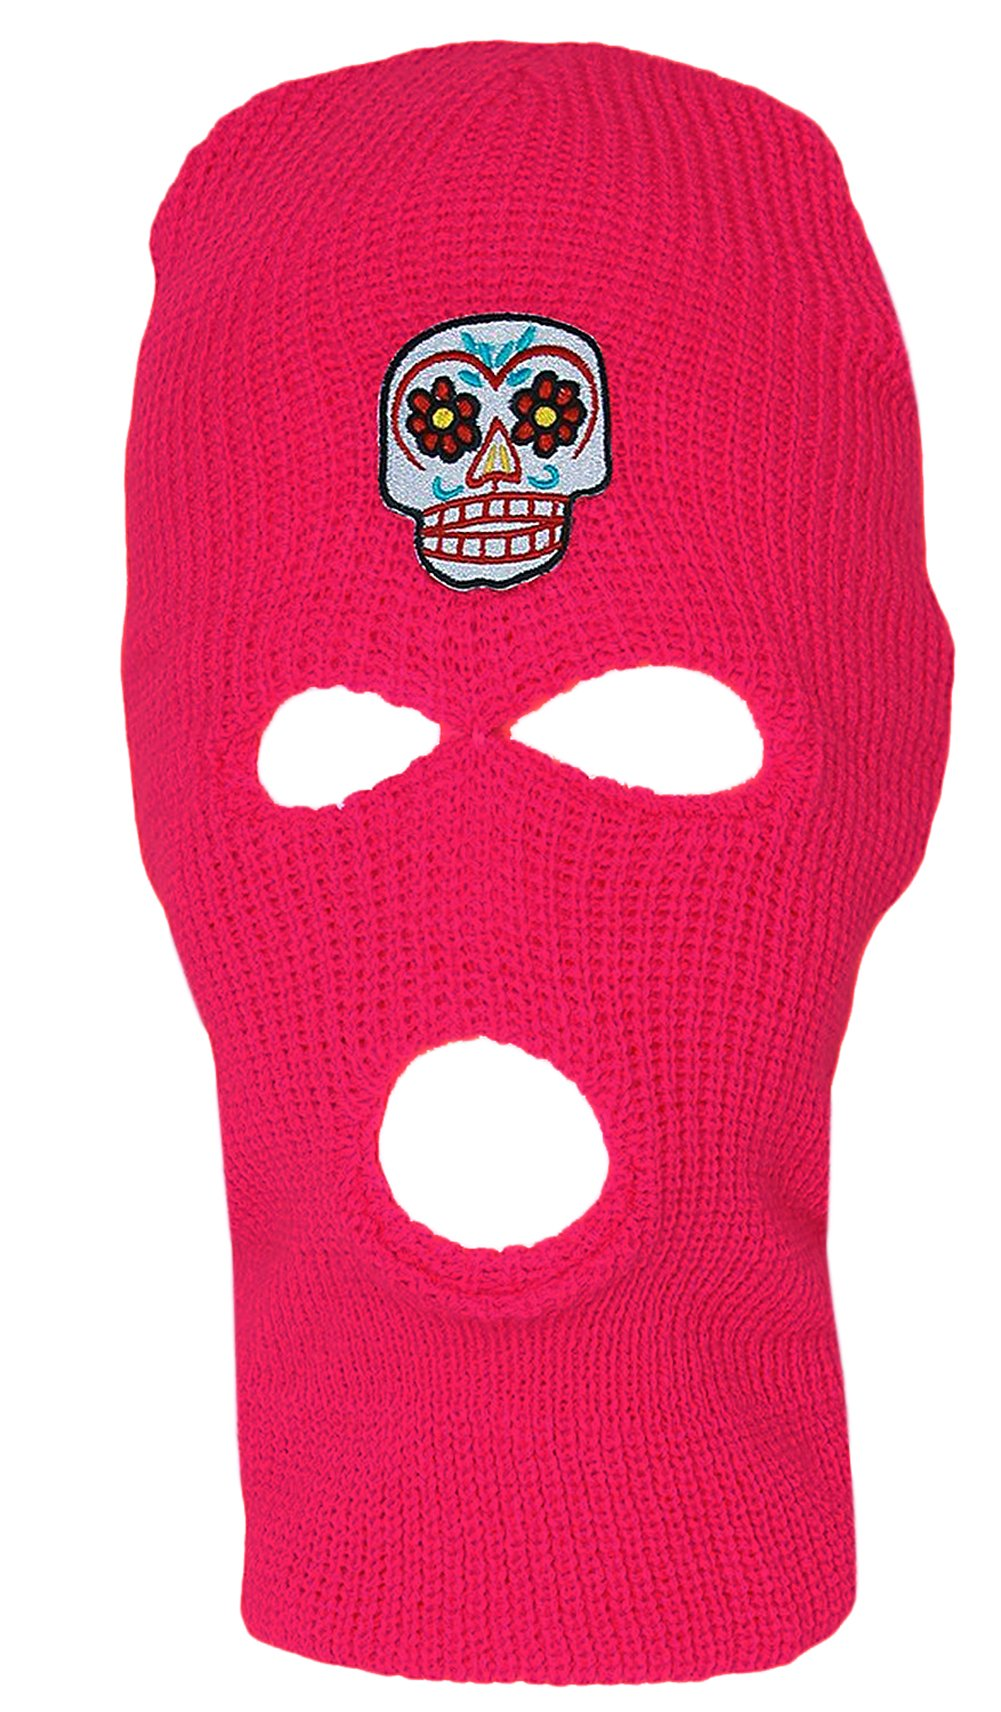 3 Hole Ski Mask Hot Pink, Sugar Skull by Hollywood (Image #1)